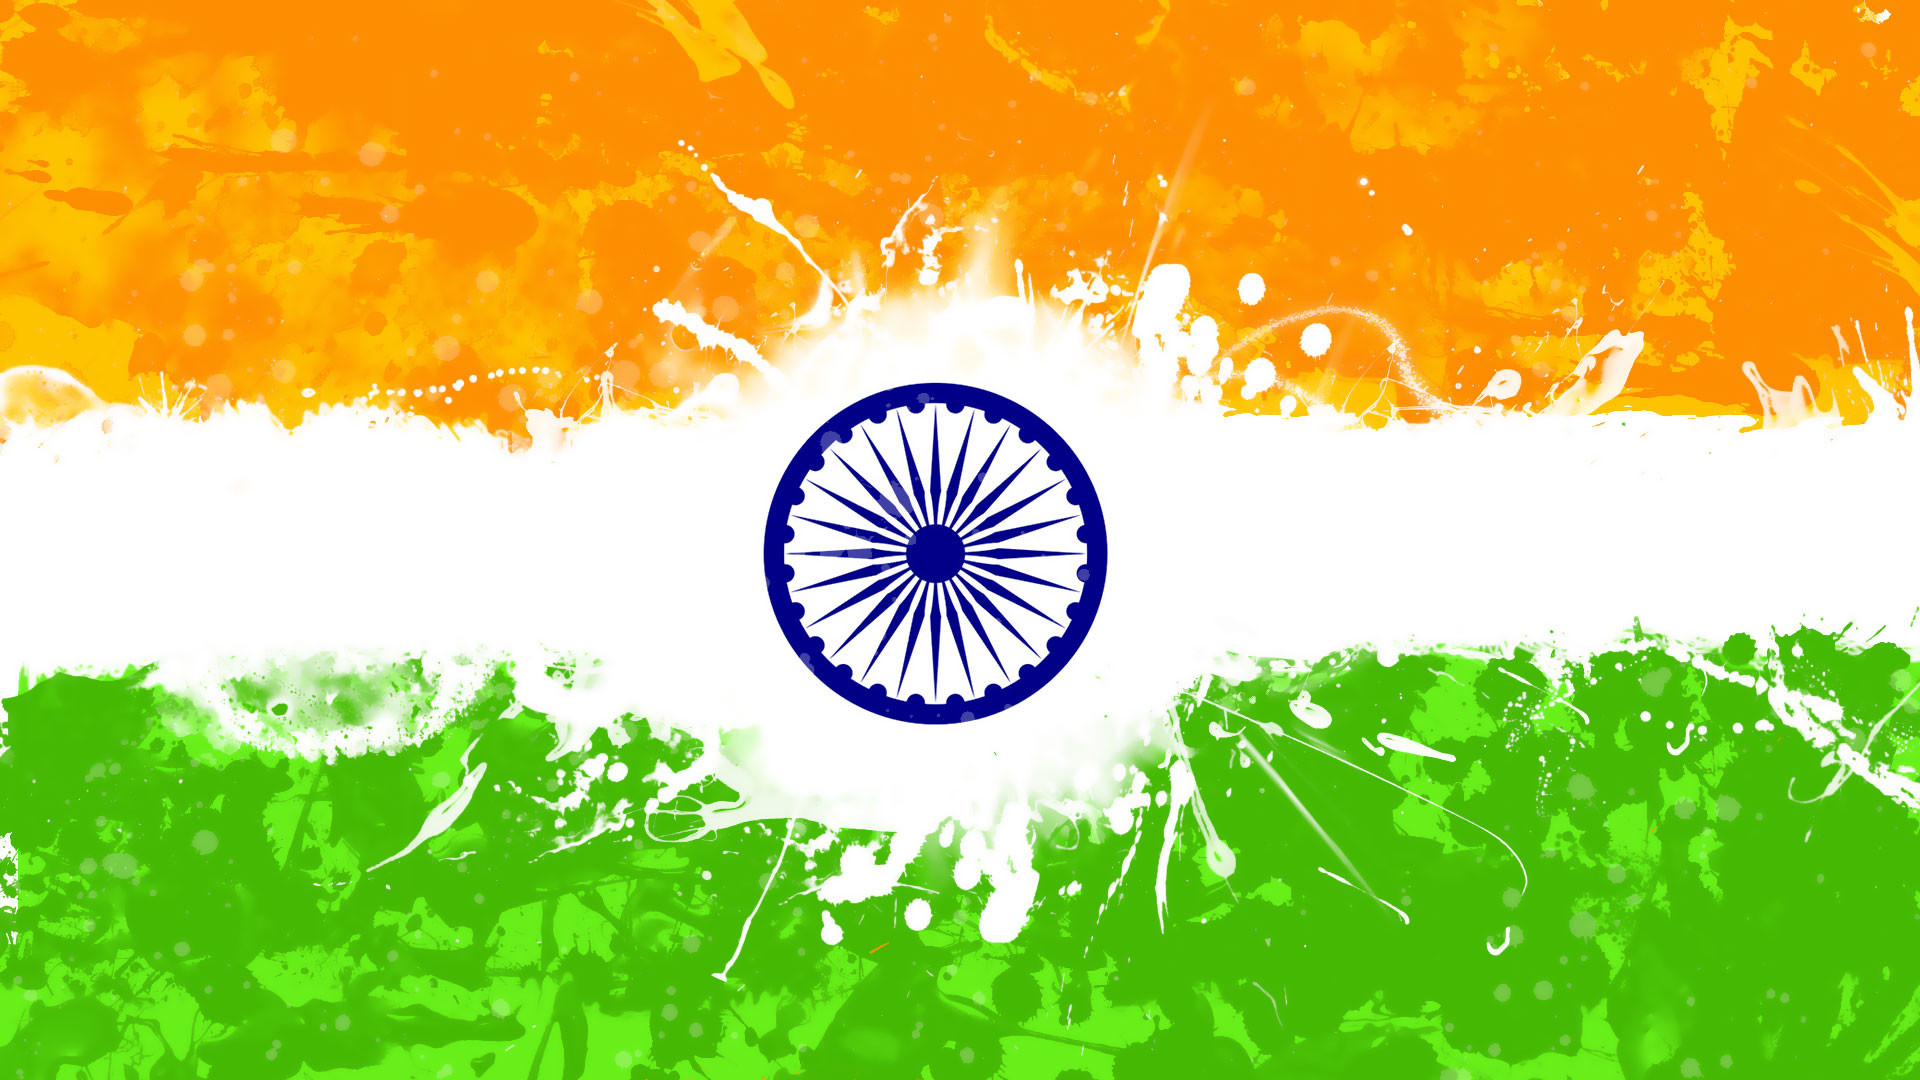 indian flag wallpaper 2018 (78+ images)